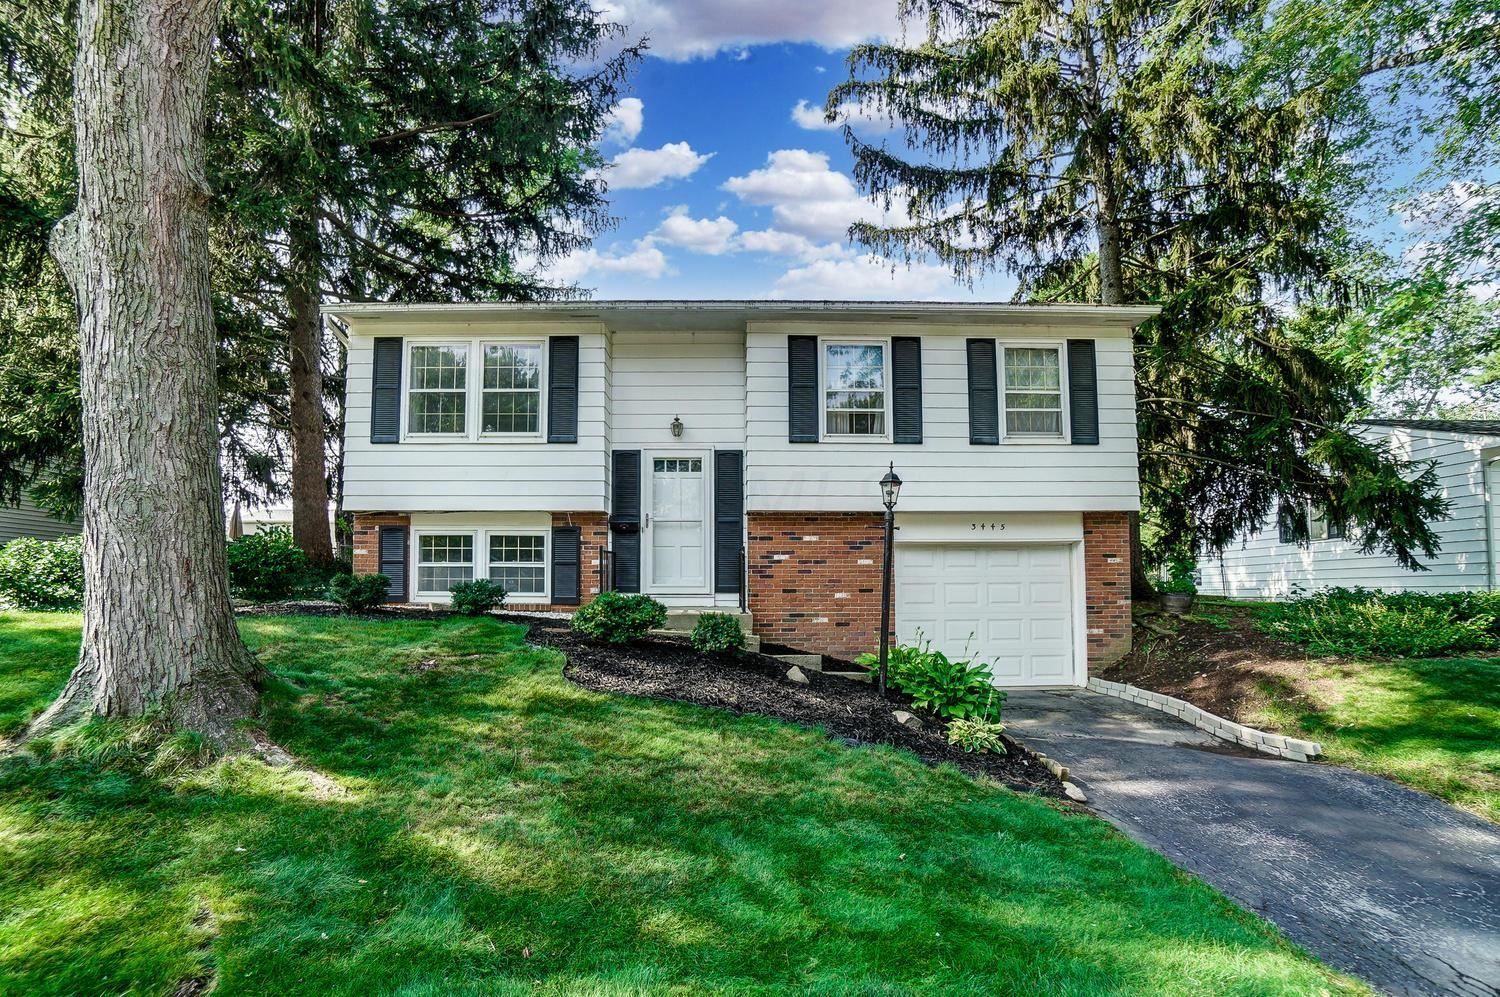 Photo for 3445 Brazzaville Road, Westerville, OH 43081 (MLS # 221029591)